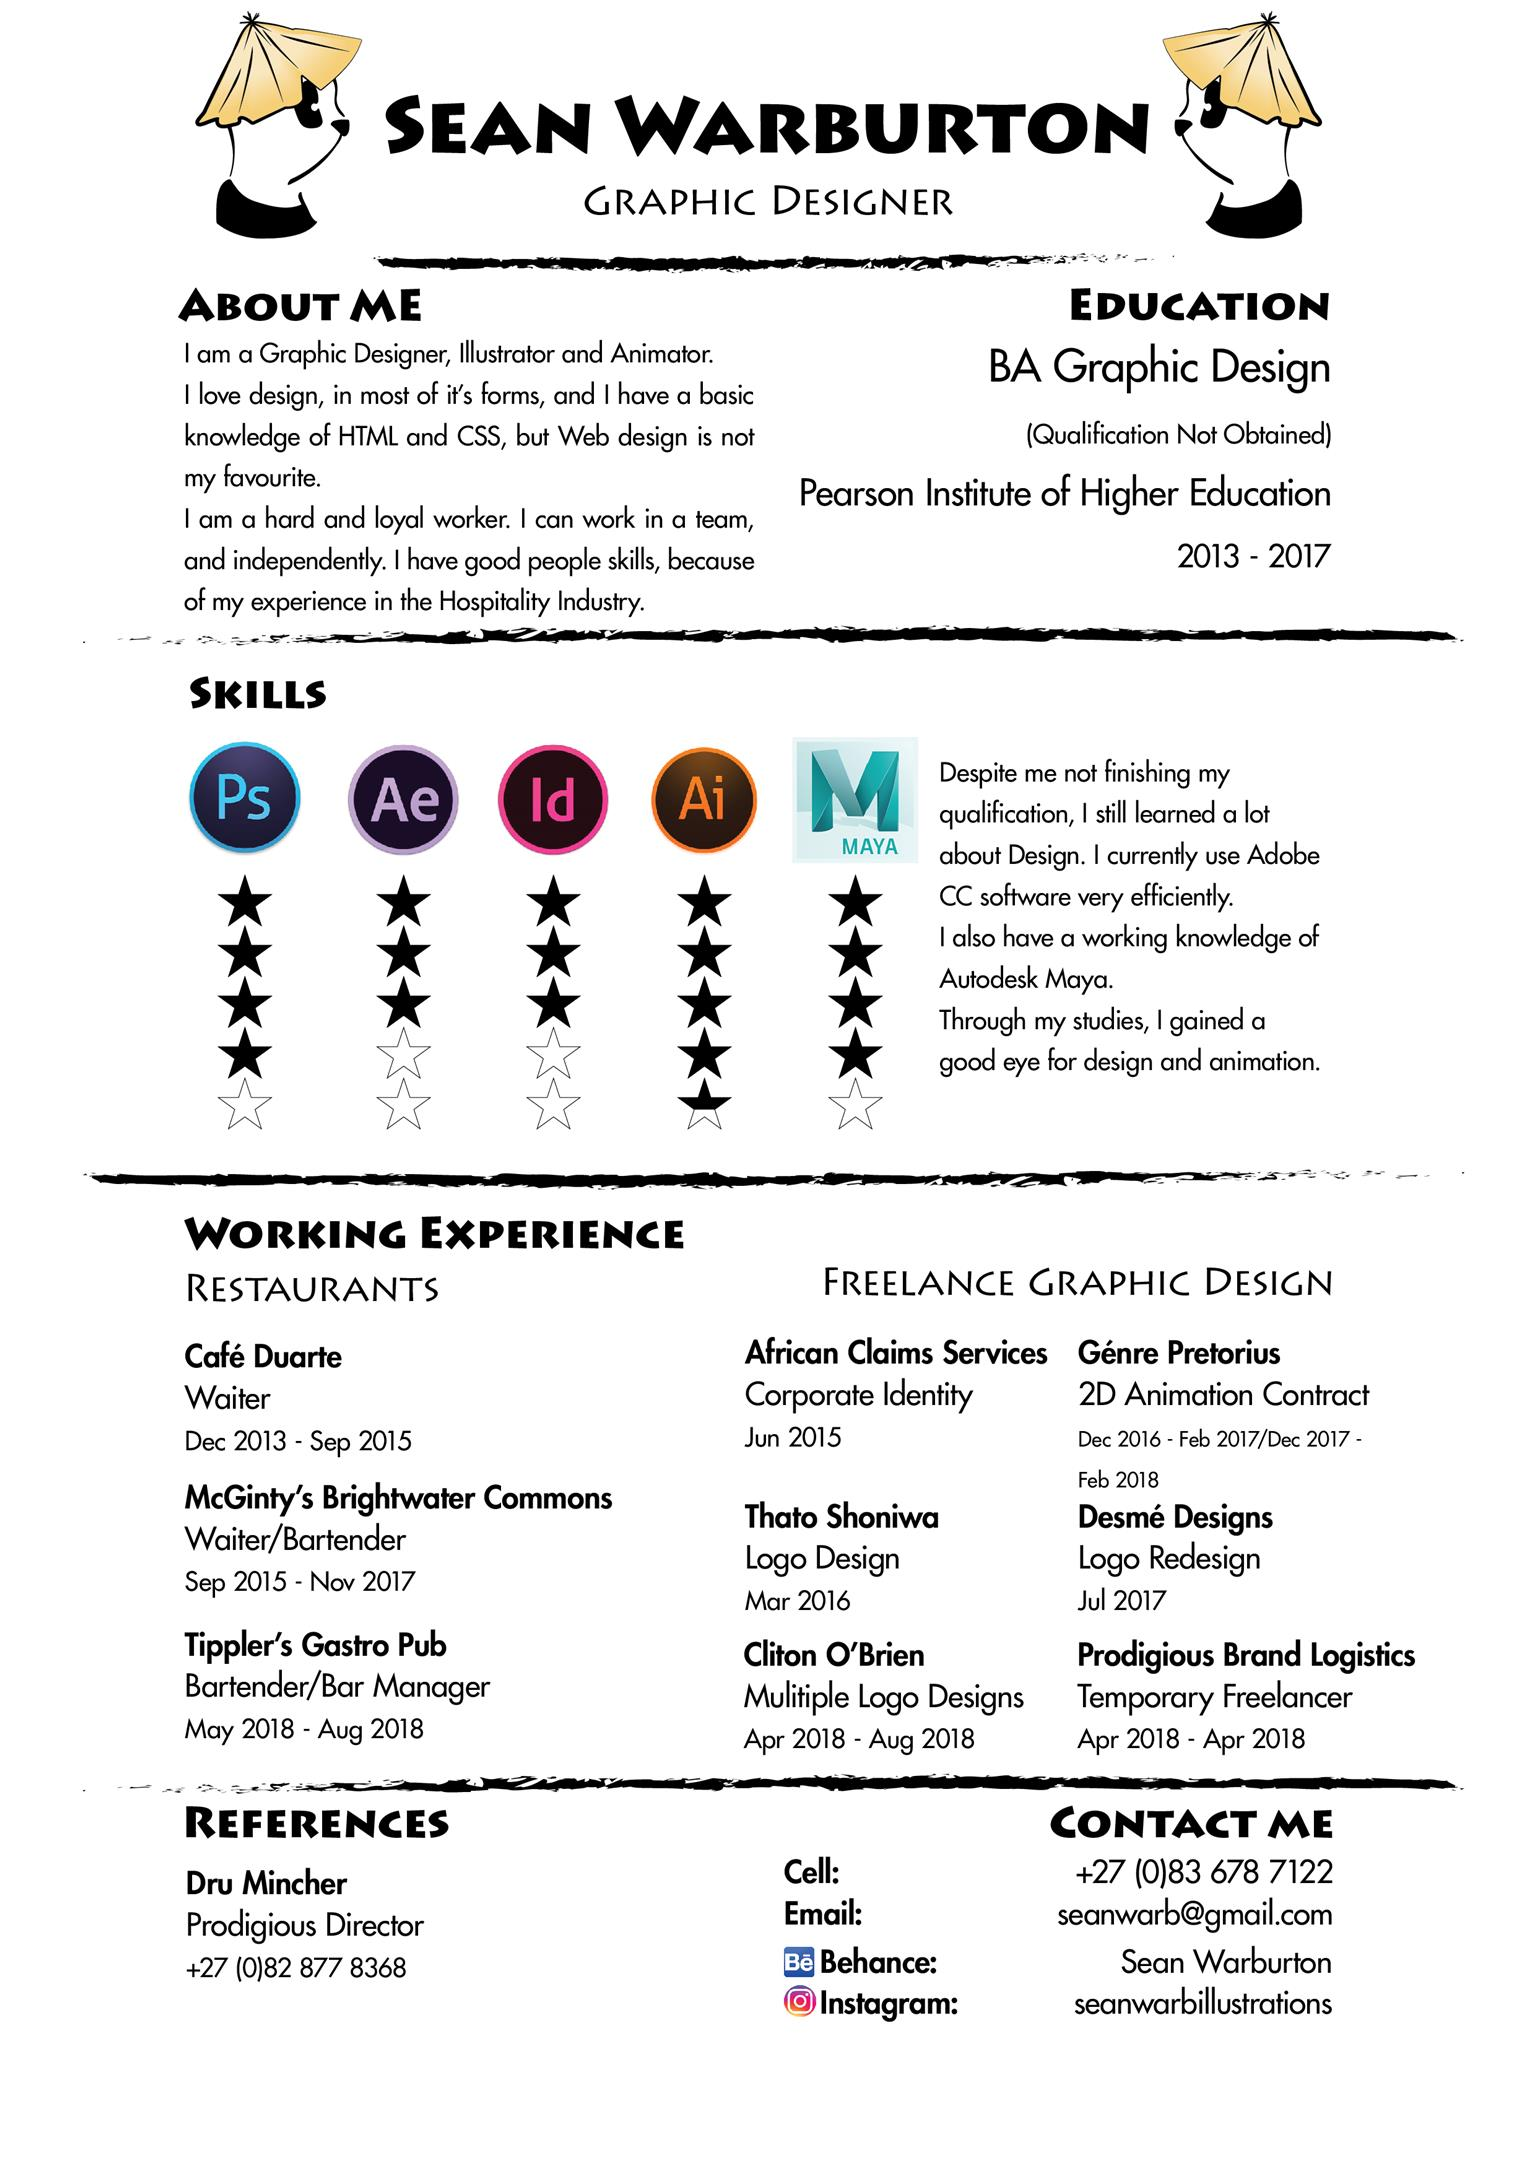 Freelance Graphic Designer | Junk Mail